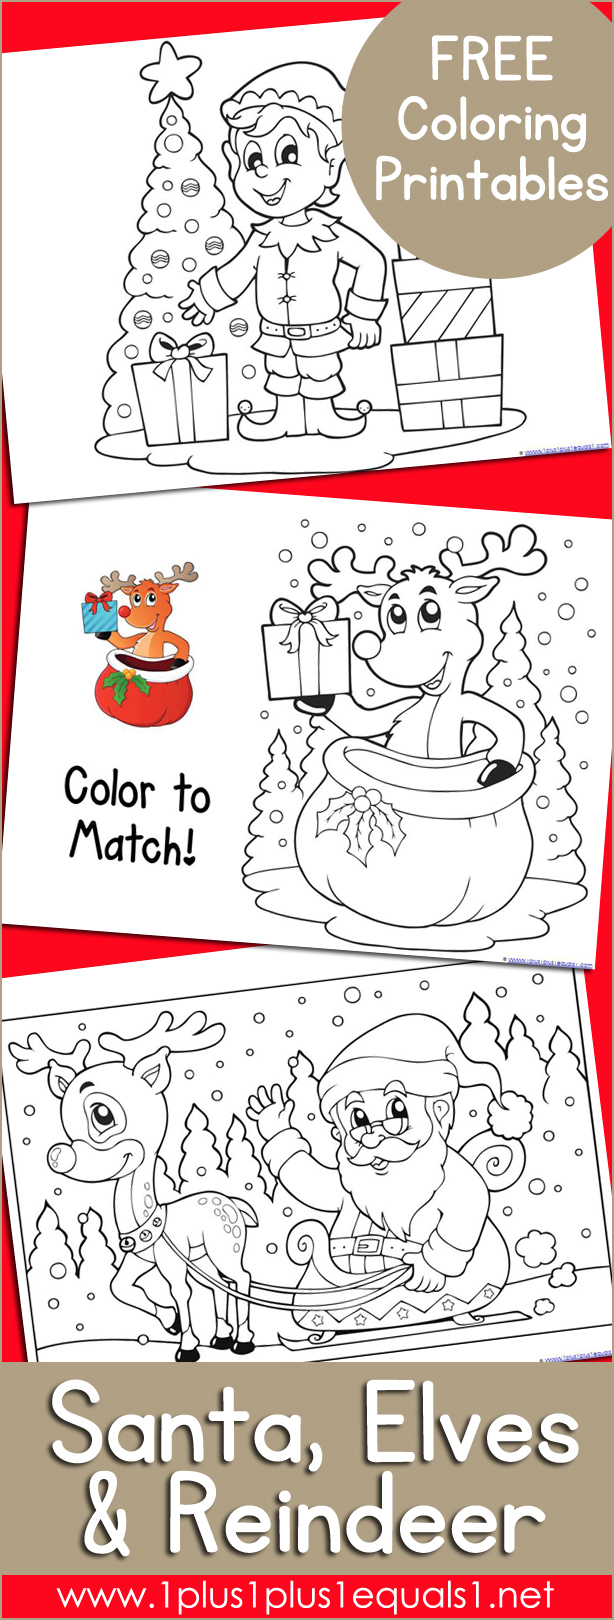 Santa, Elves, and Reindeer Christmas Coloring